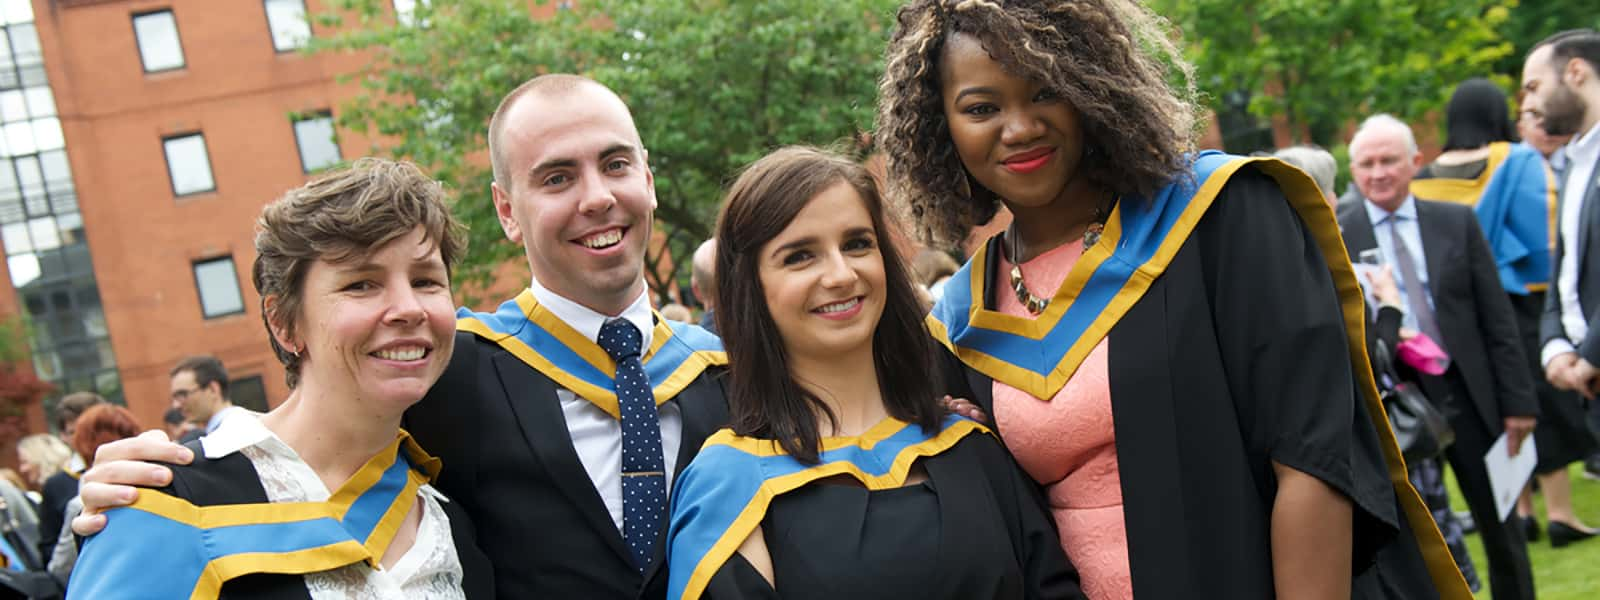 Strathclyde graduates at graduation ceremony